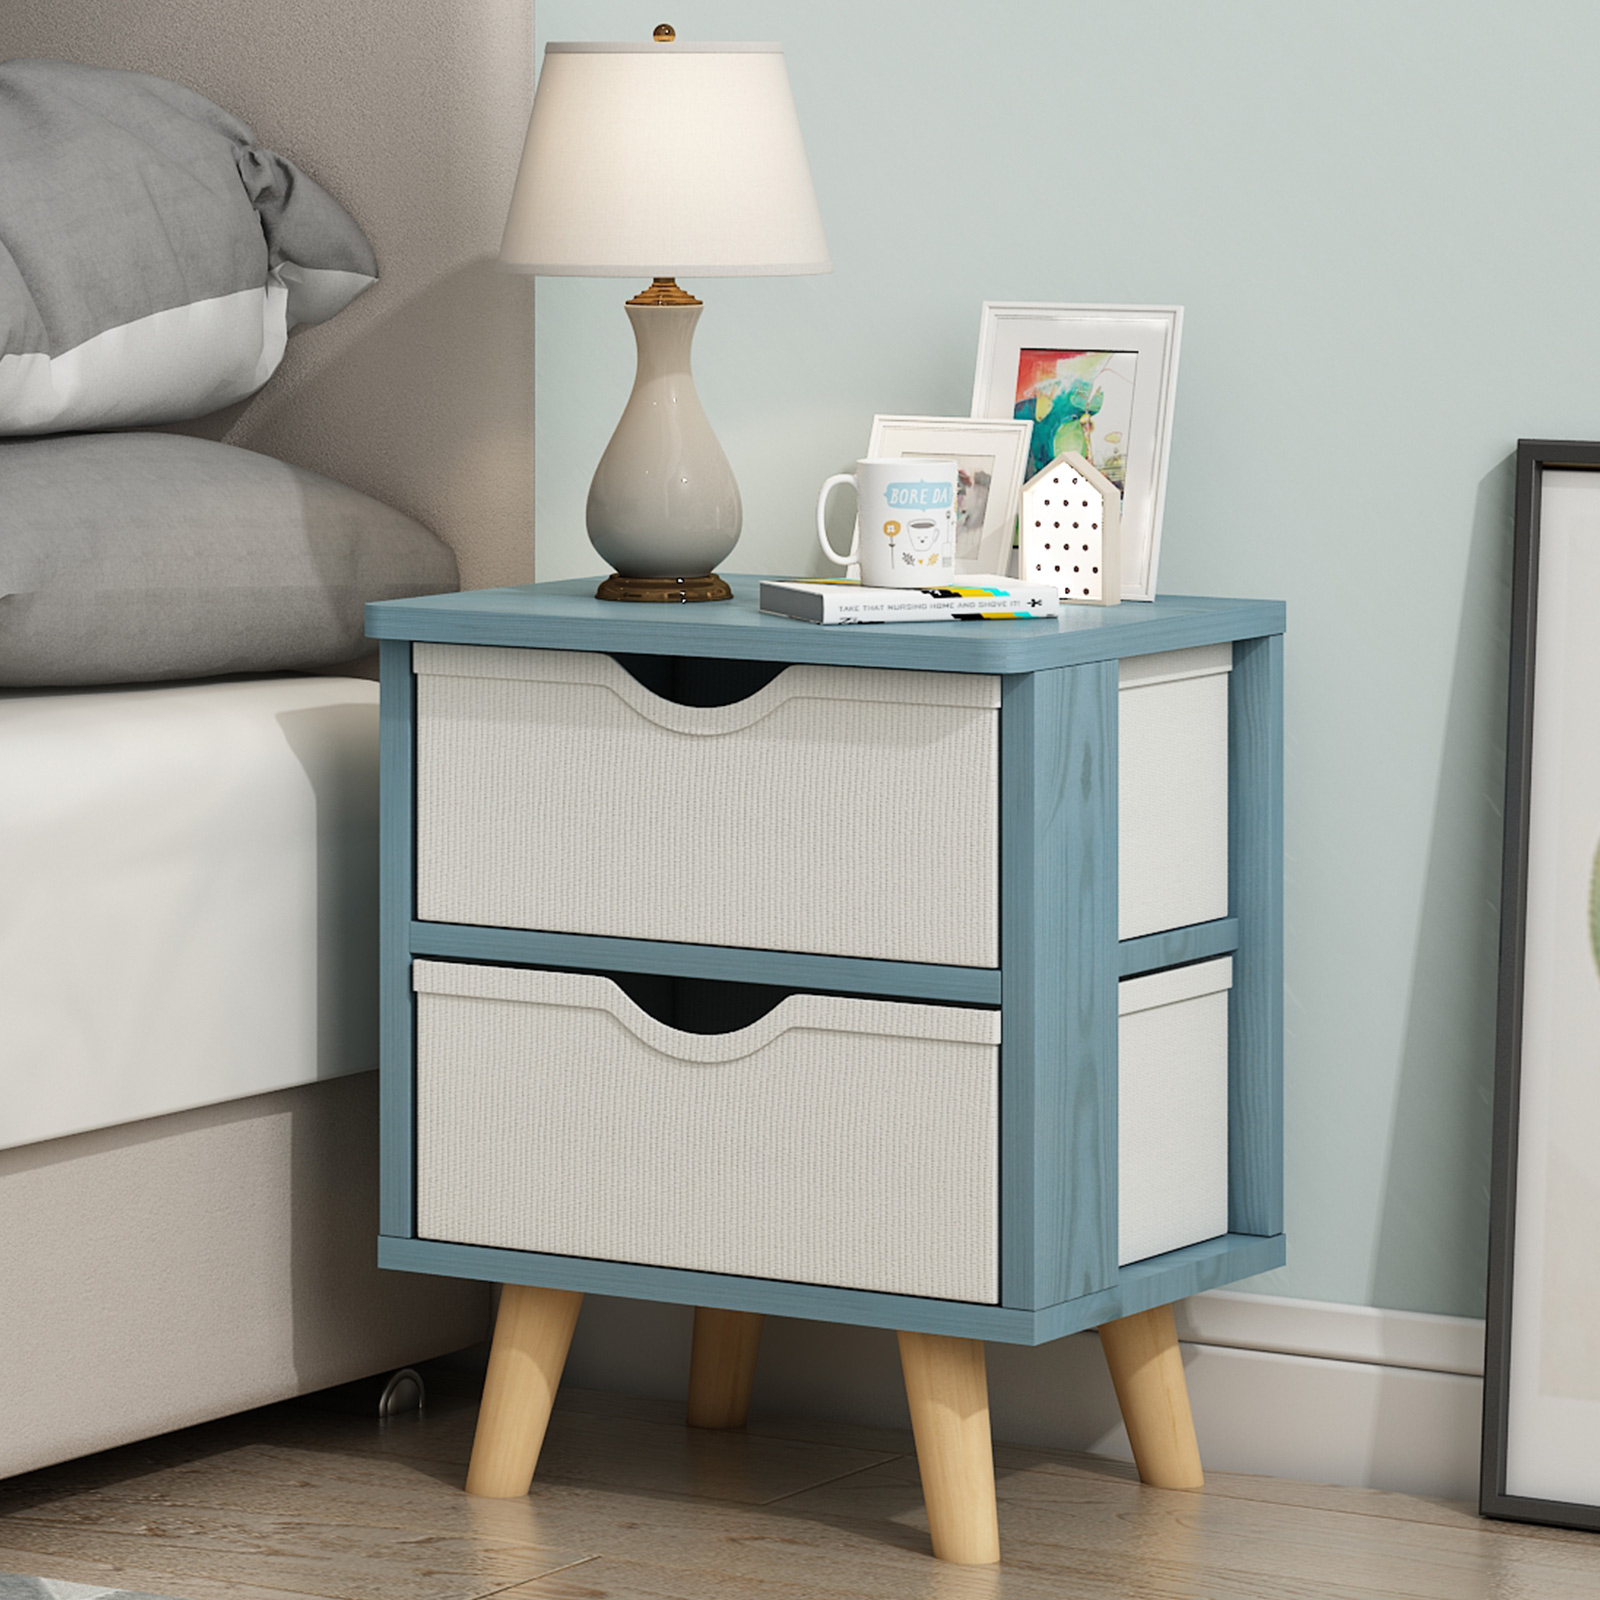 Table Northern Europe Simple Modern Simple Storage Cabinet Solid Wood Bedside Small Cabinet Shelf Small Storage Cabinet